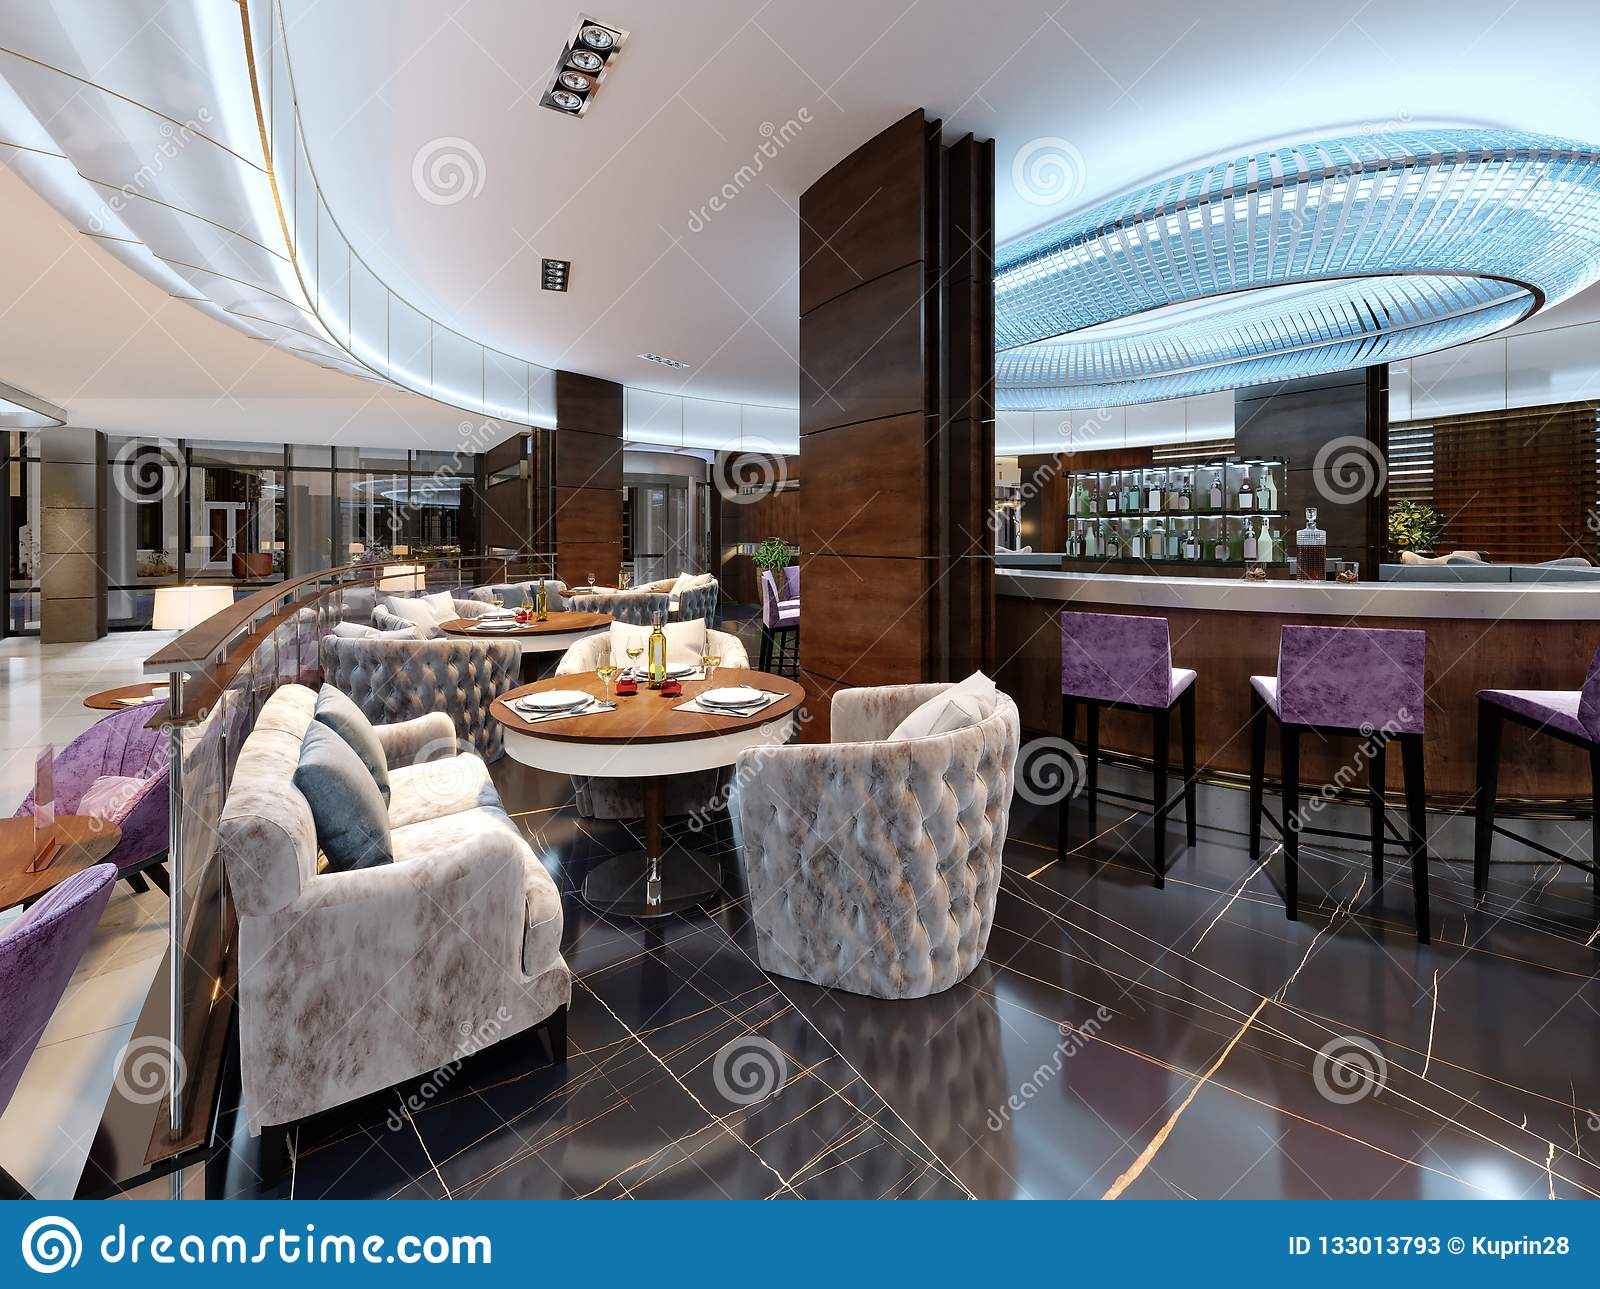 Modern Bar Restaurant In A Luxurious Modern Style With Elegant Furniture And Lighting Stock Illustration Illustration Of Chandelier Beverages 133013793